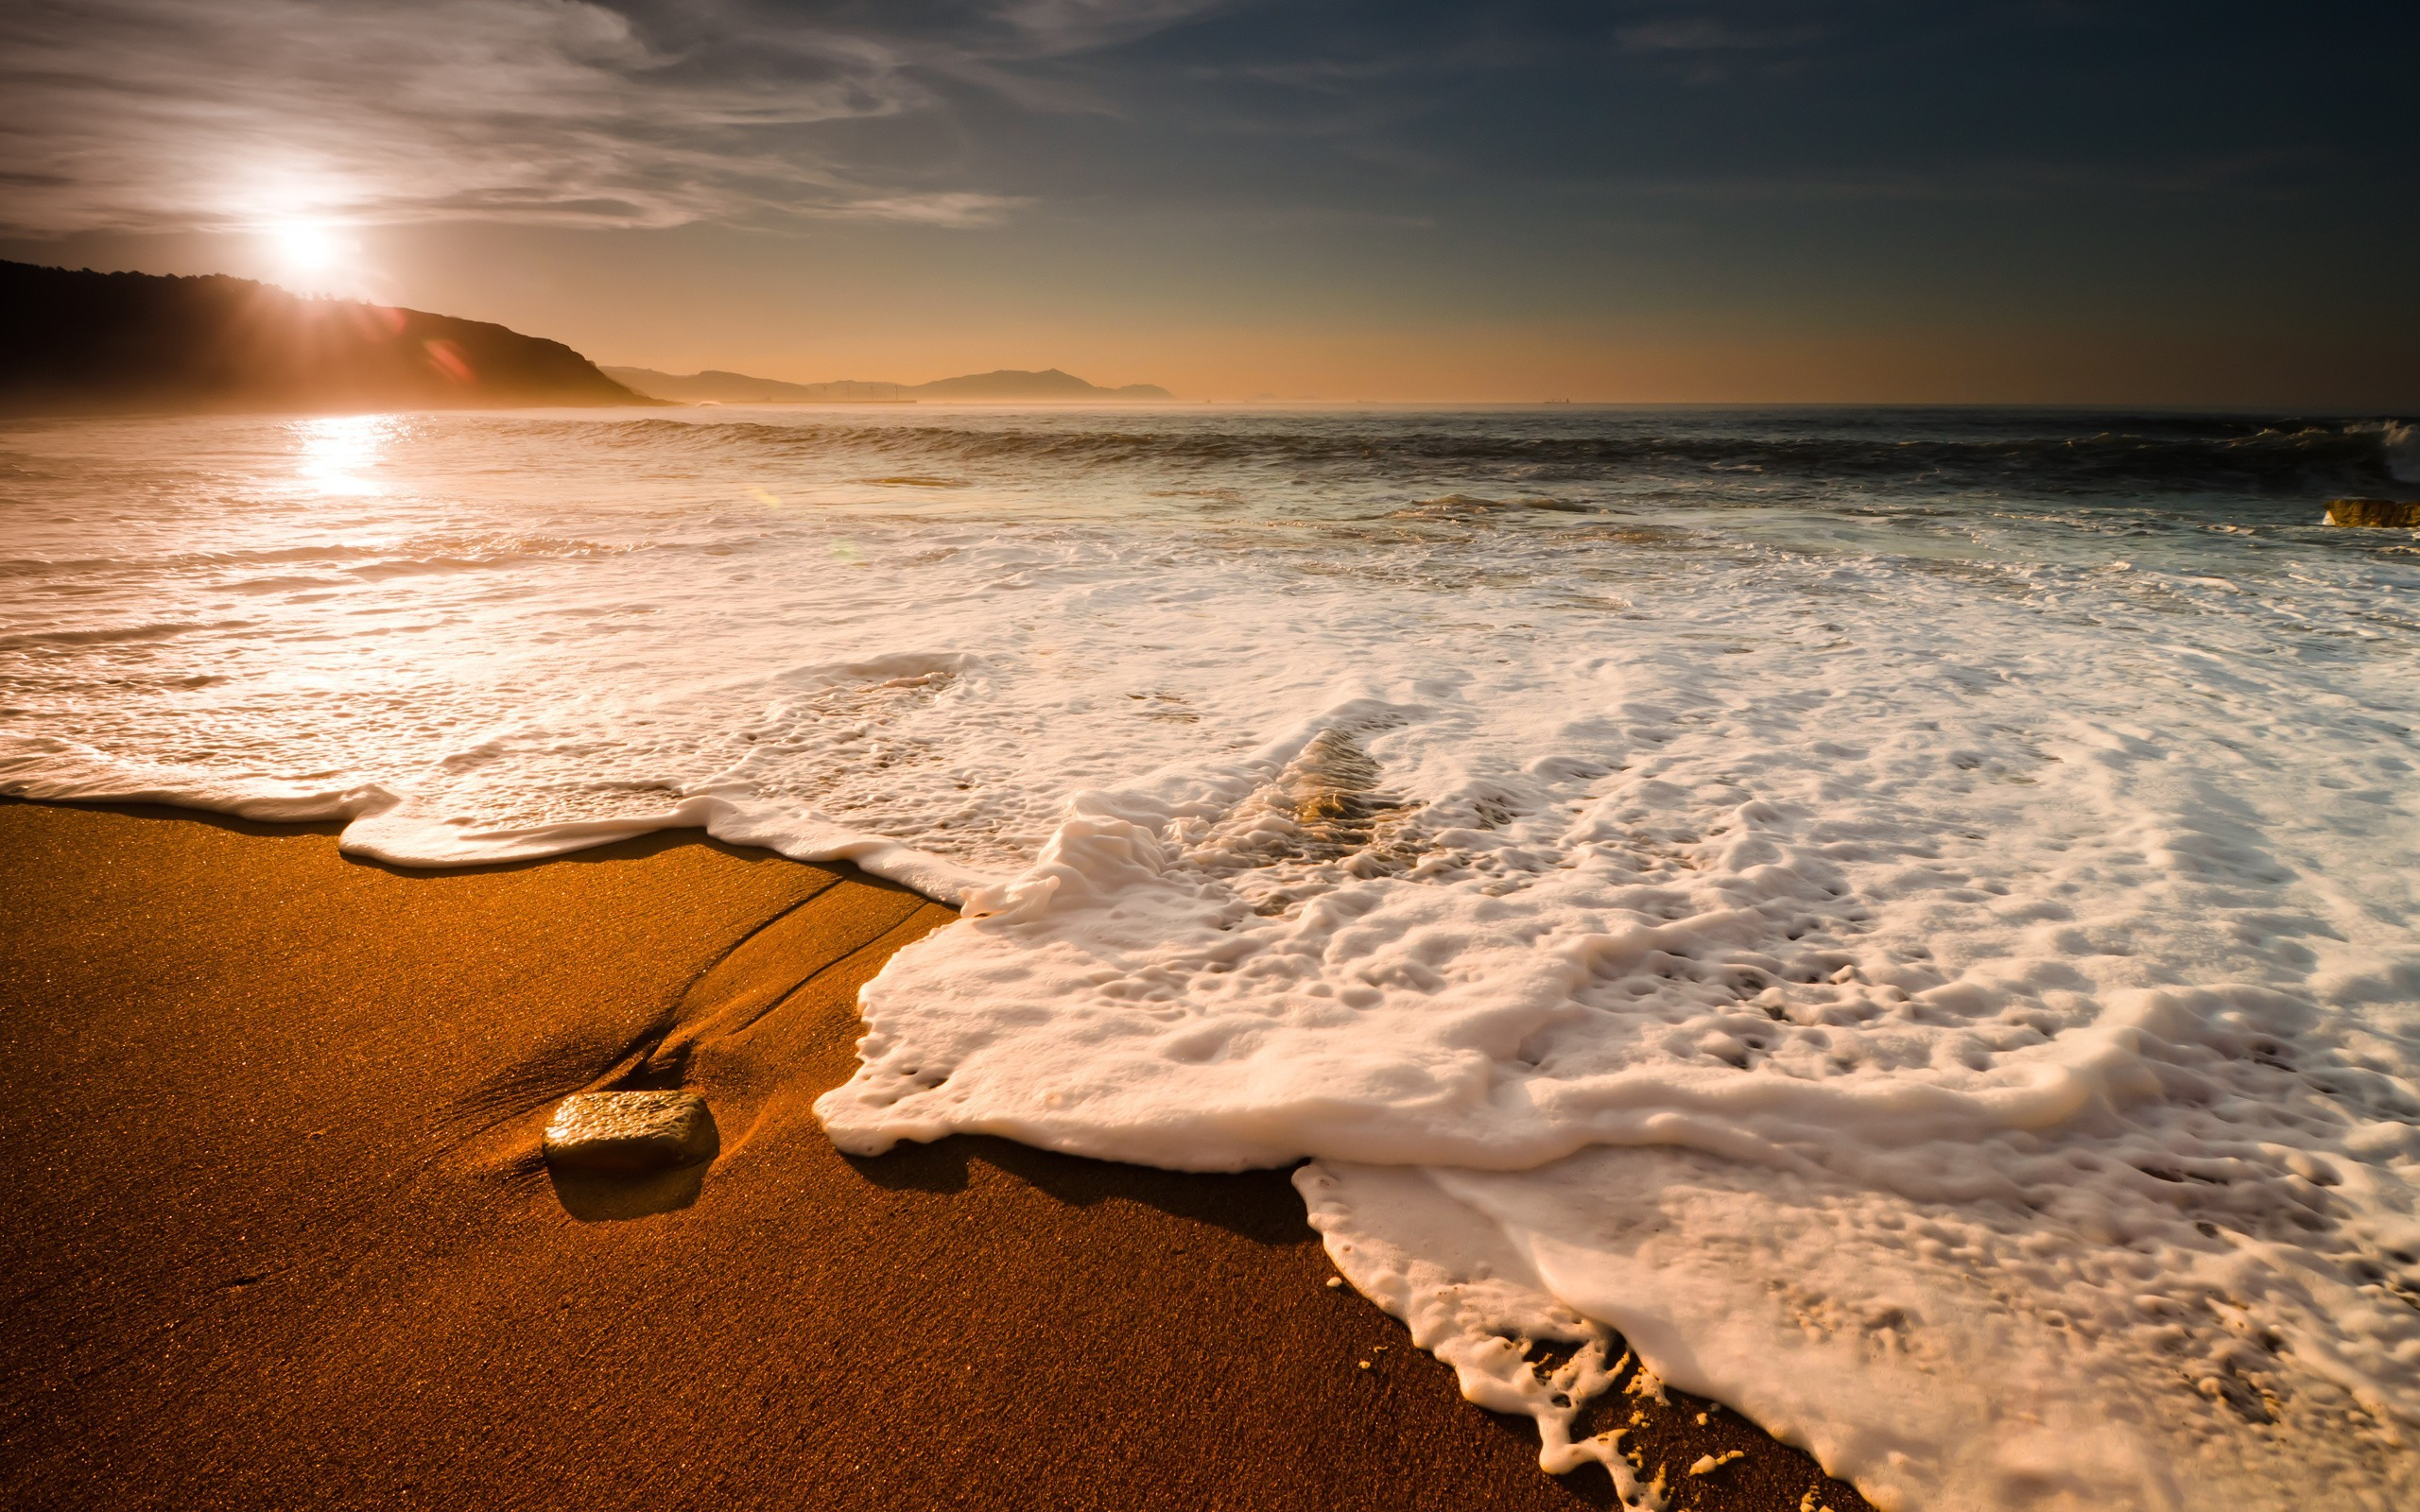 Surf Beach Wallpaper 53 images 2560x1600